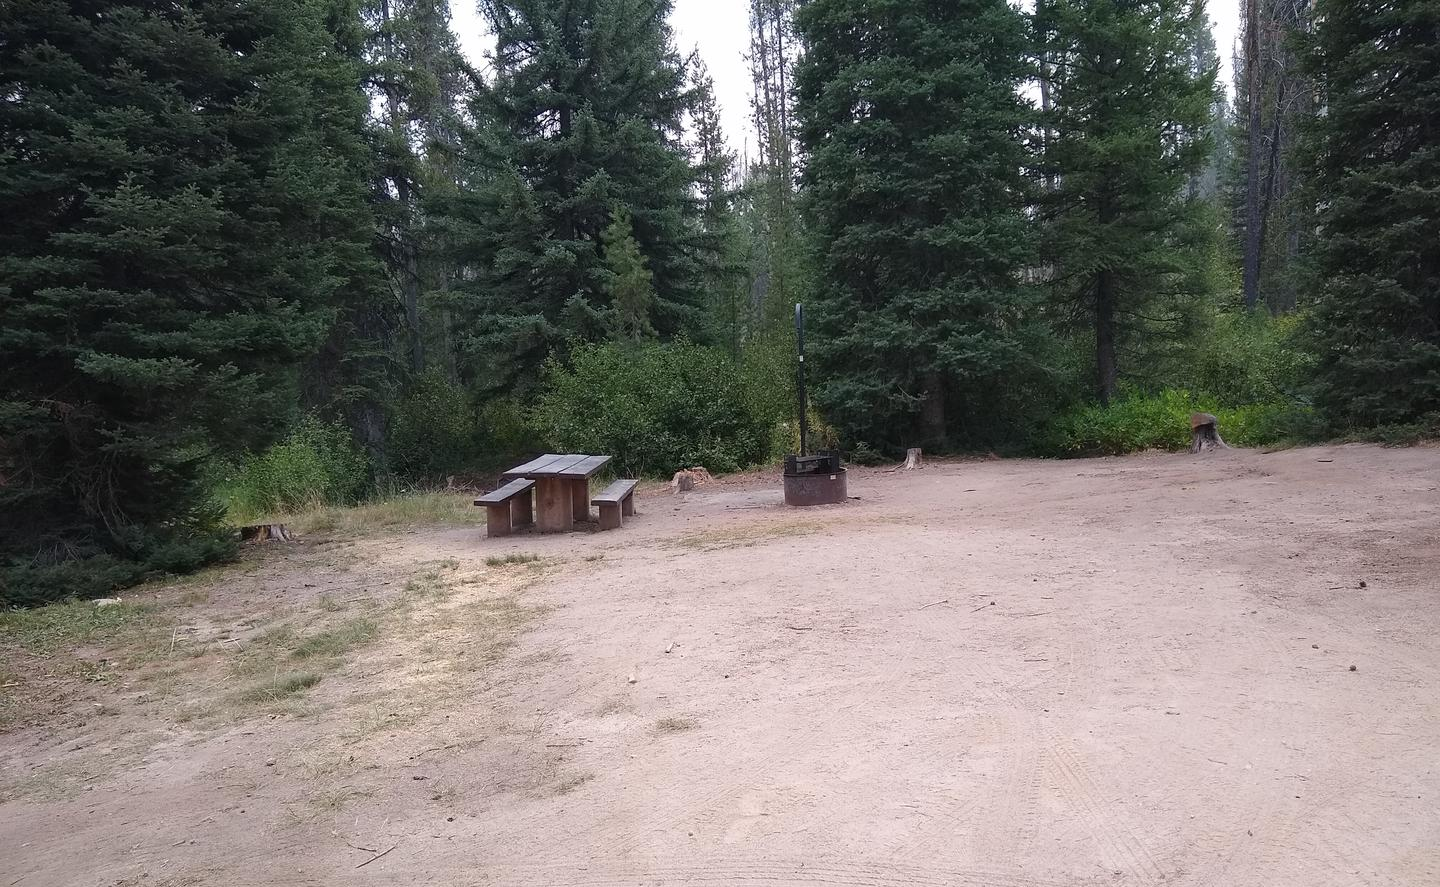 A wide spacious single campsite.Site 3 at Edna Creek Campground is very spacious and sunny.